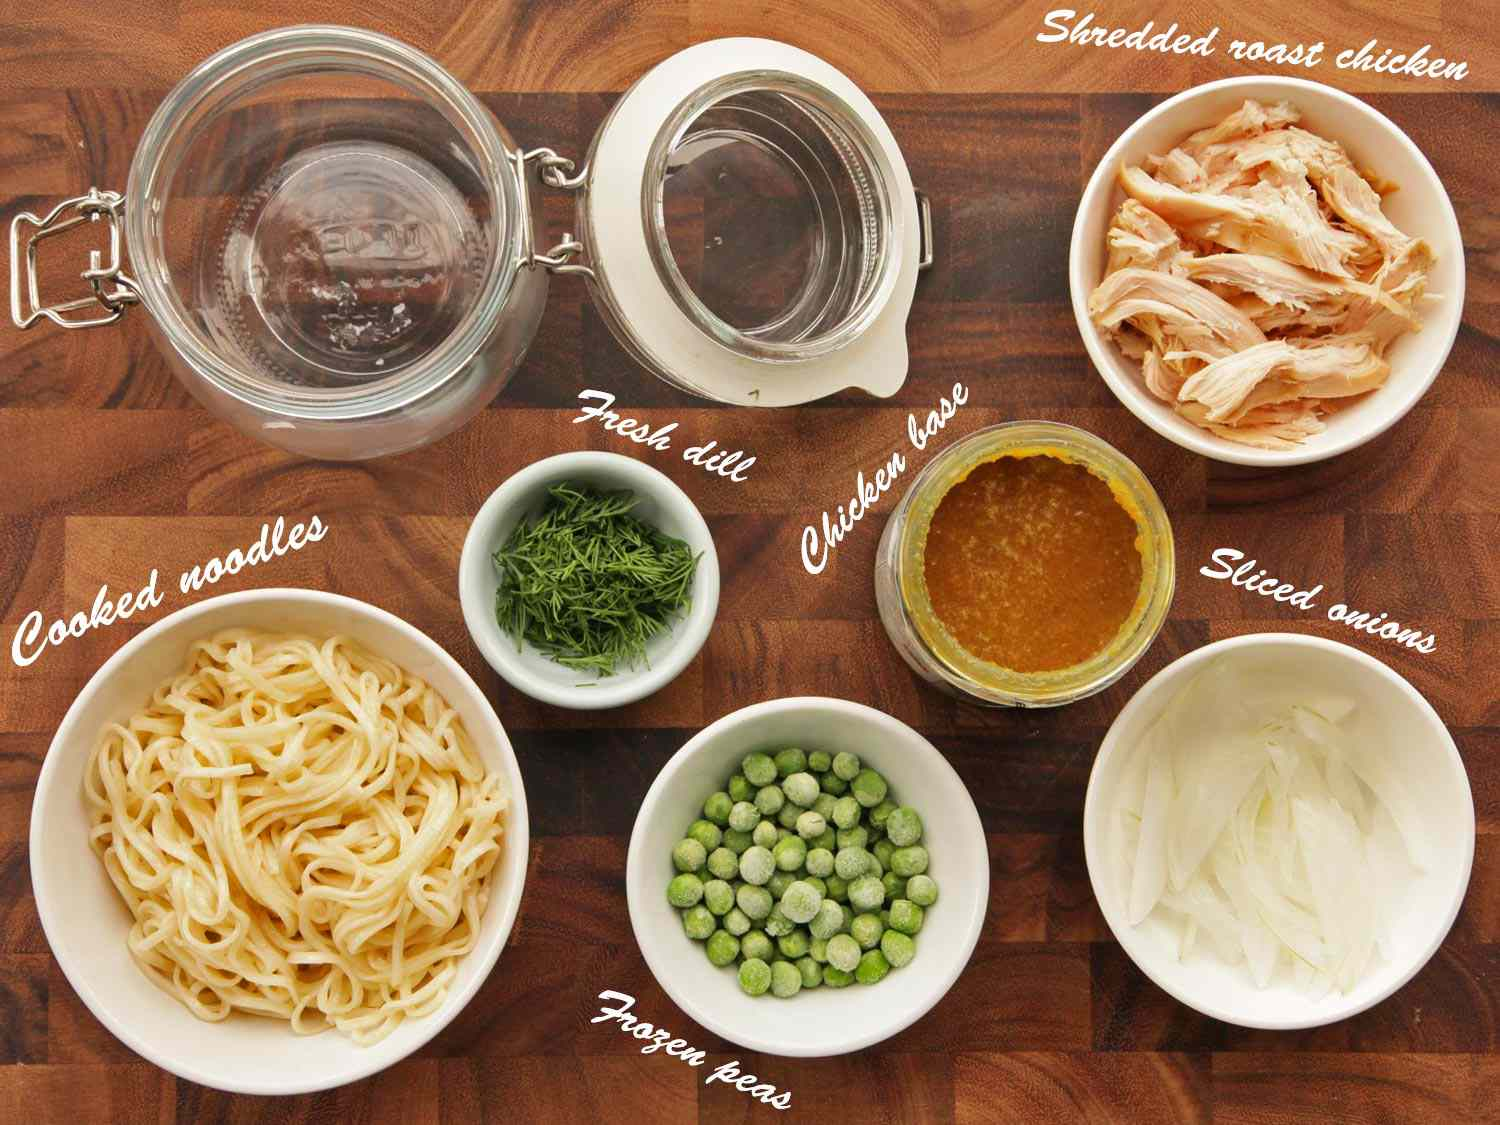 Make Your Own Just-Add-Hot-Water Instant Noodles (and Make Your